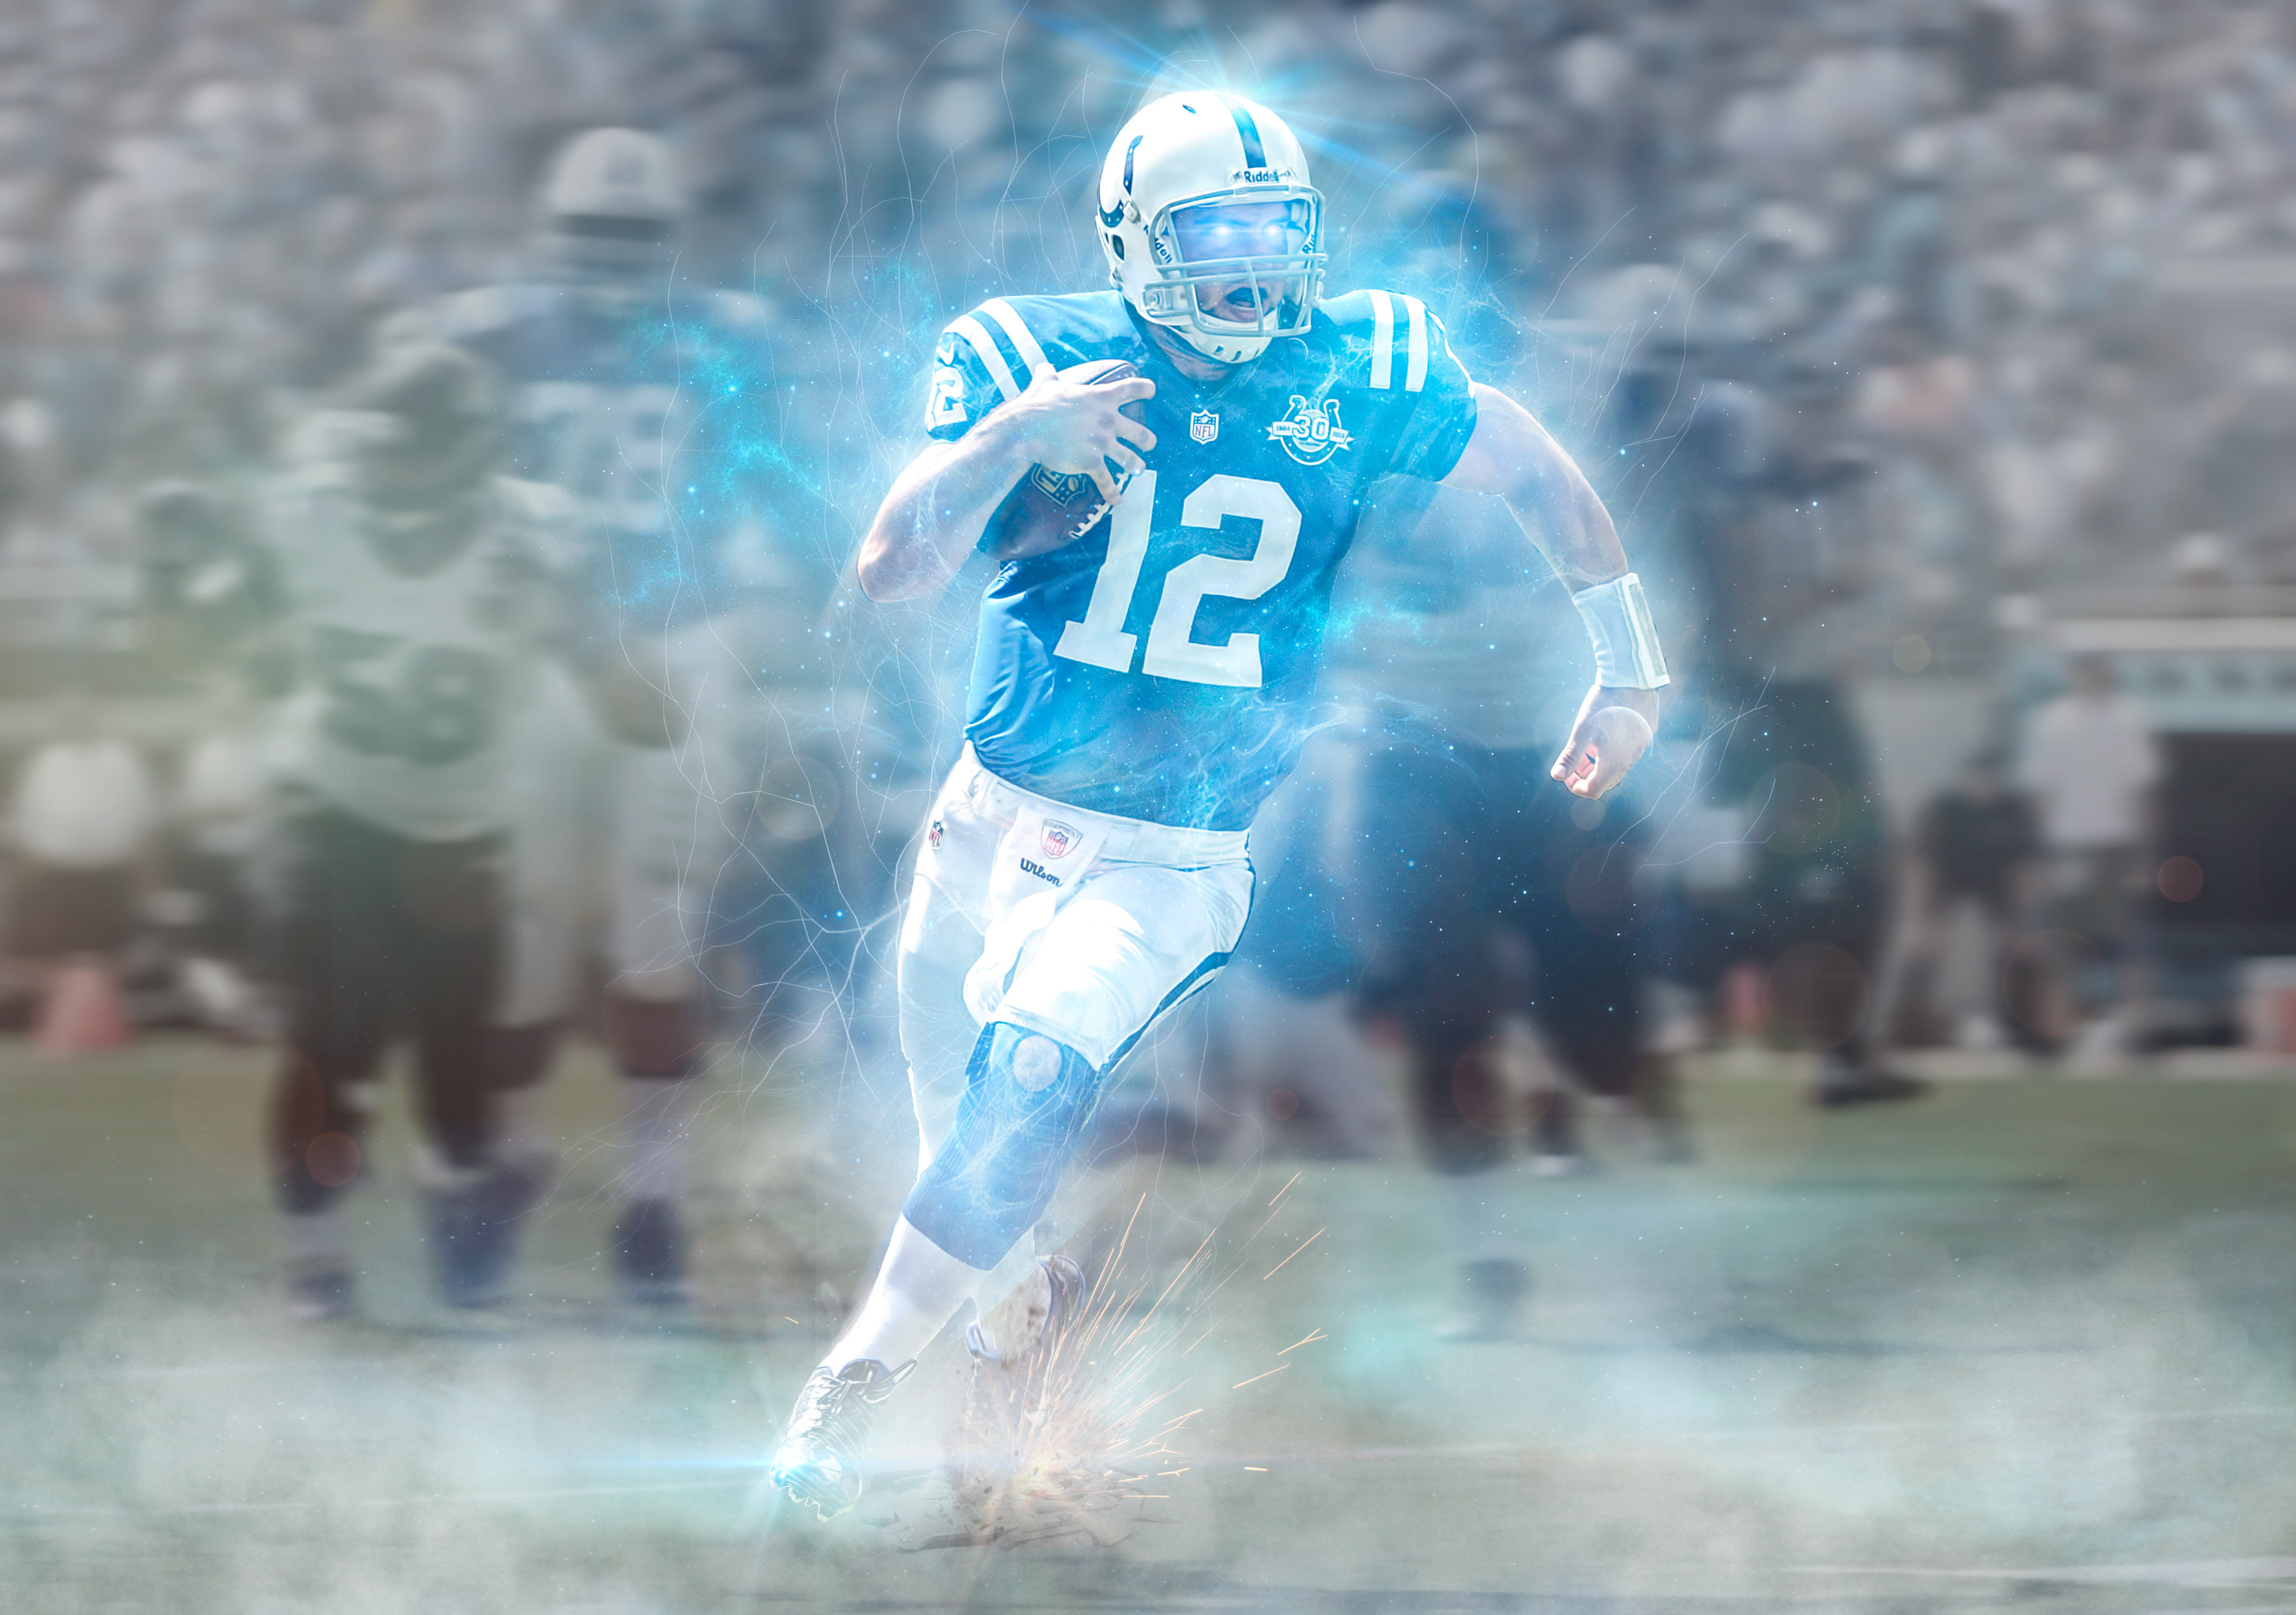 1920x1080 Indianapolis BColts Wallpapers B